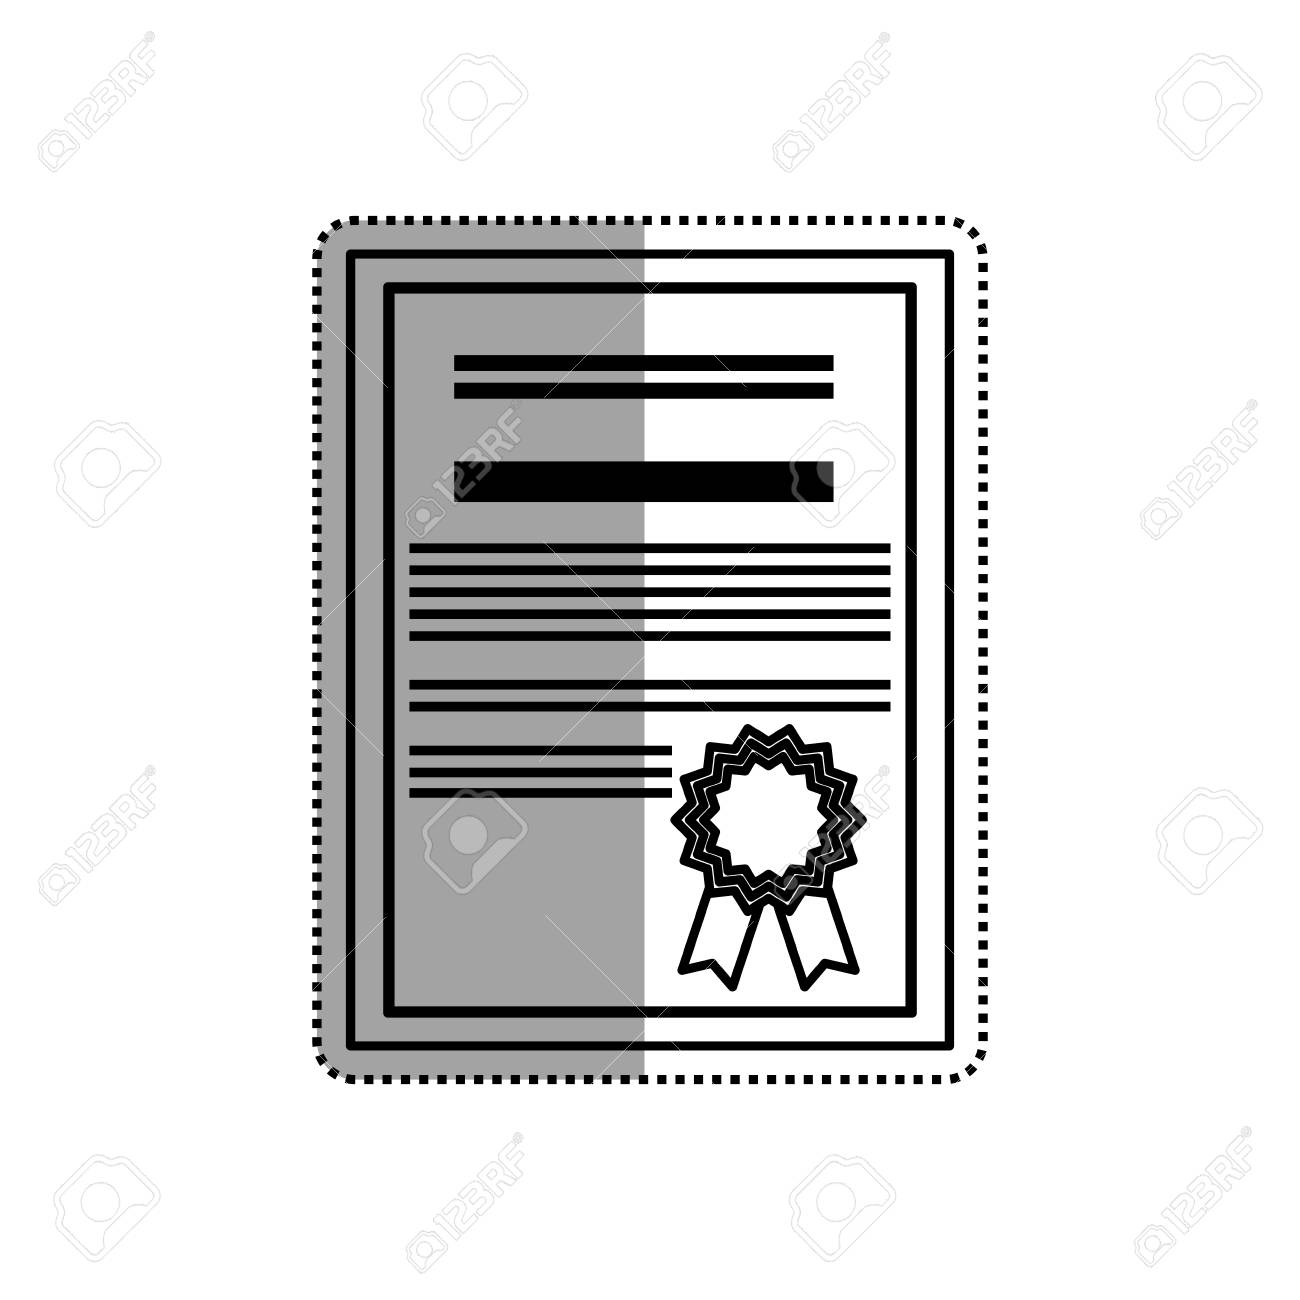 Diploma Education Certification Icon Vector Illustration Graphic